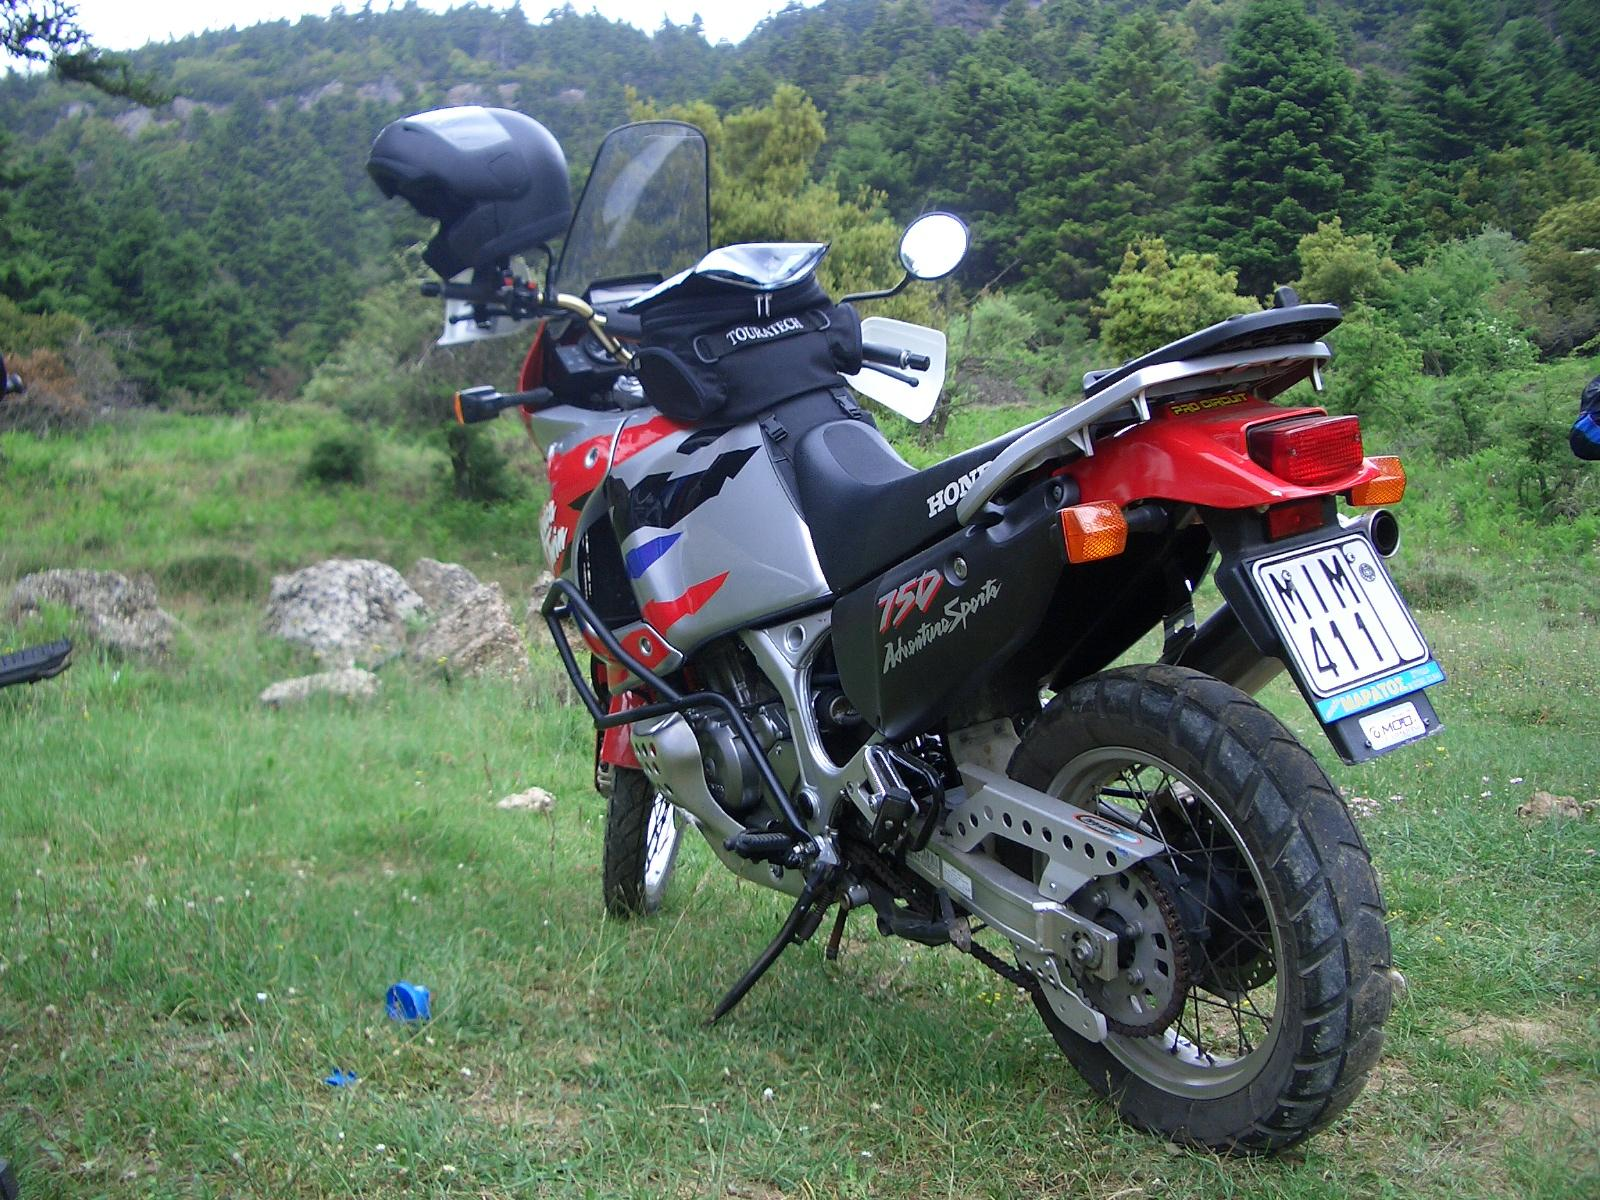 Honda XRV 750 Africa Twin photo 25171